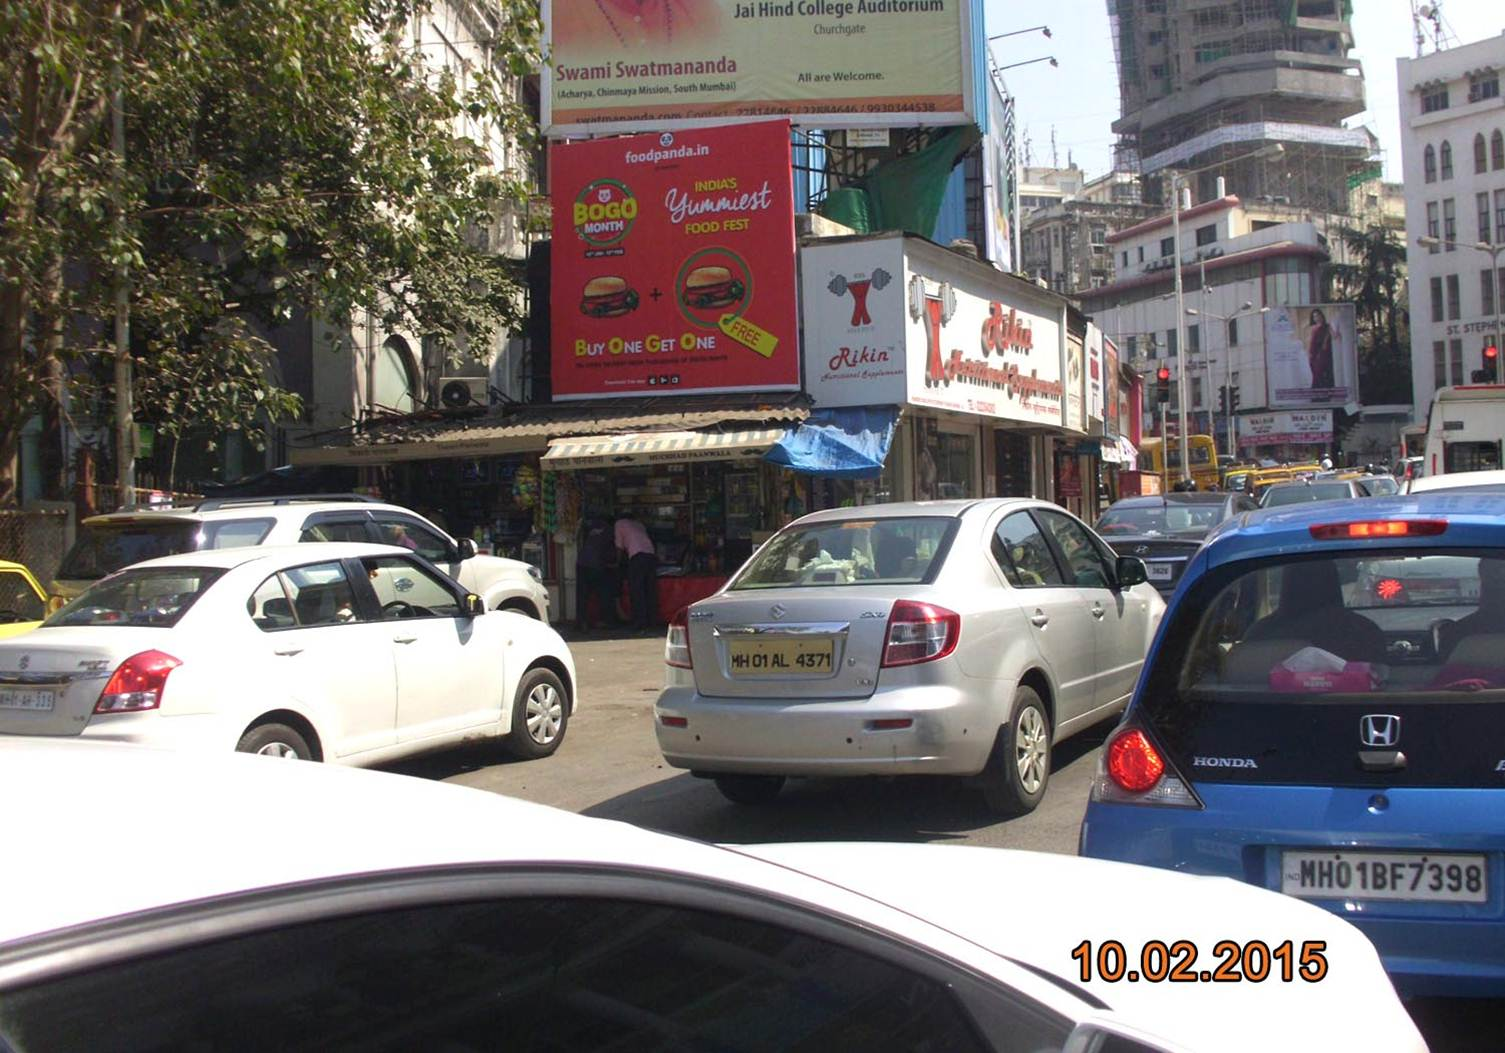 Outdoor Advertising in Bill Board WaRoaden